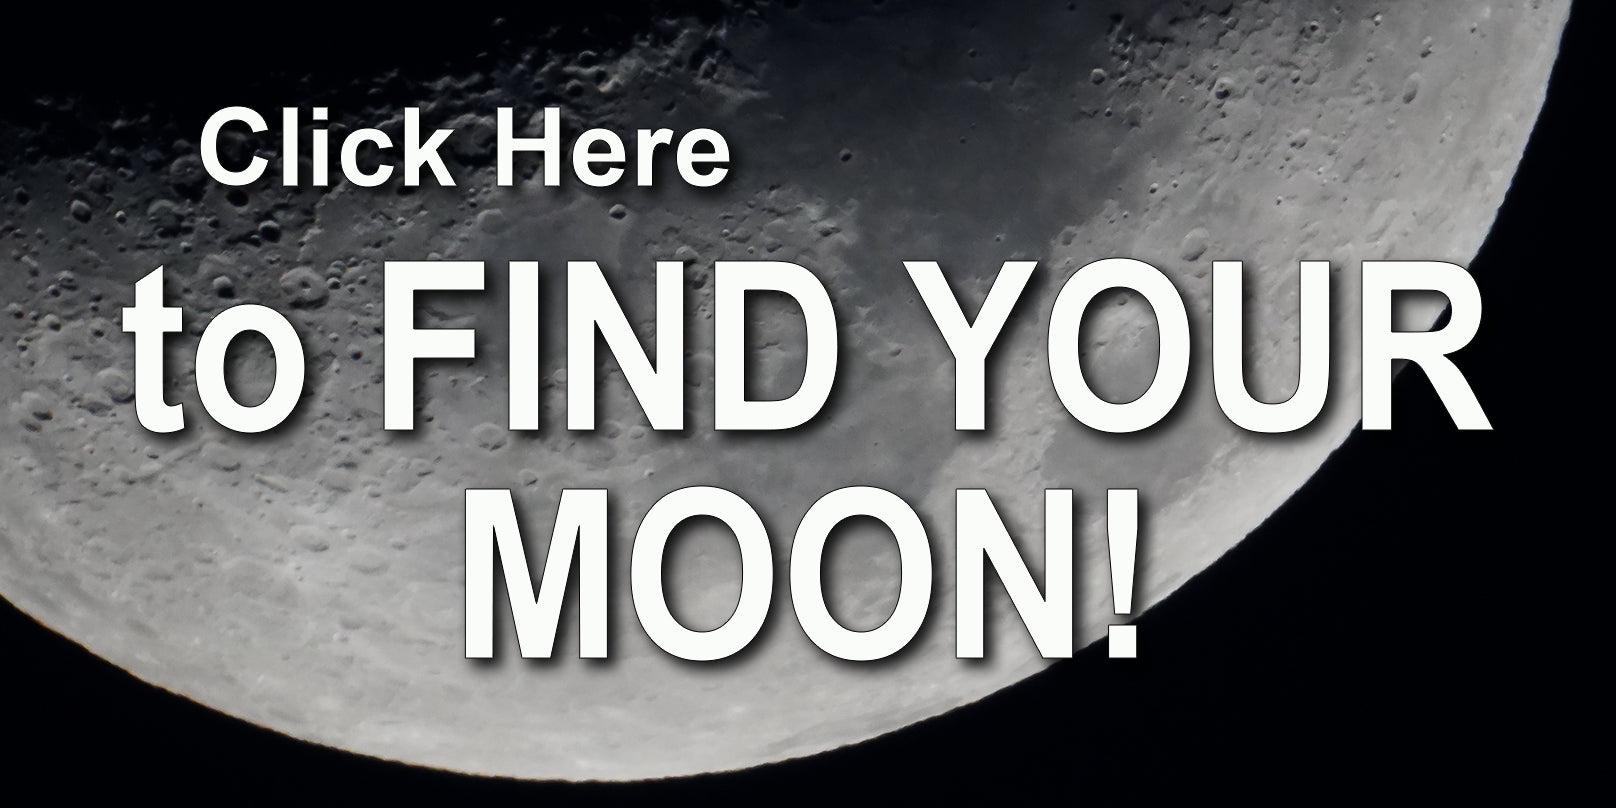 Find Your Moon from Moonglow